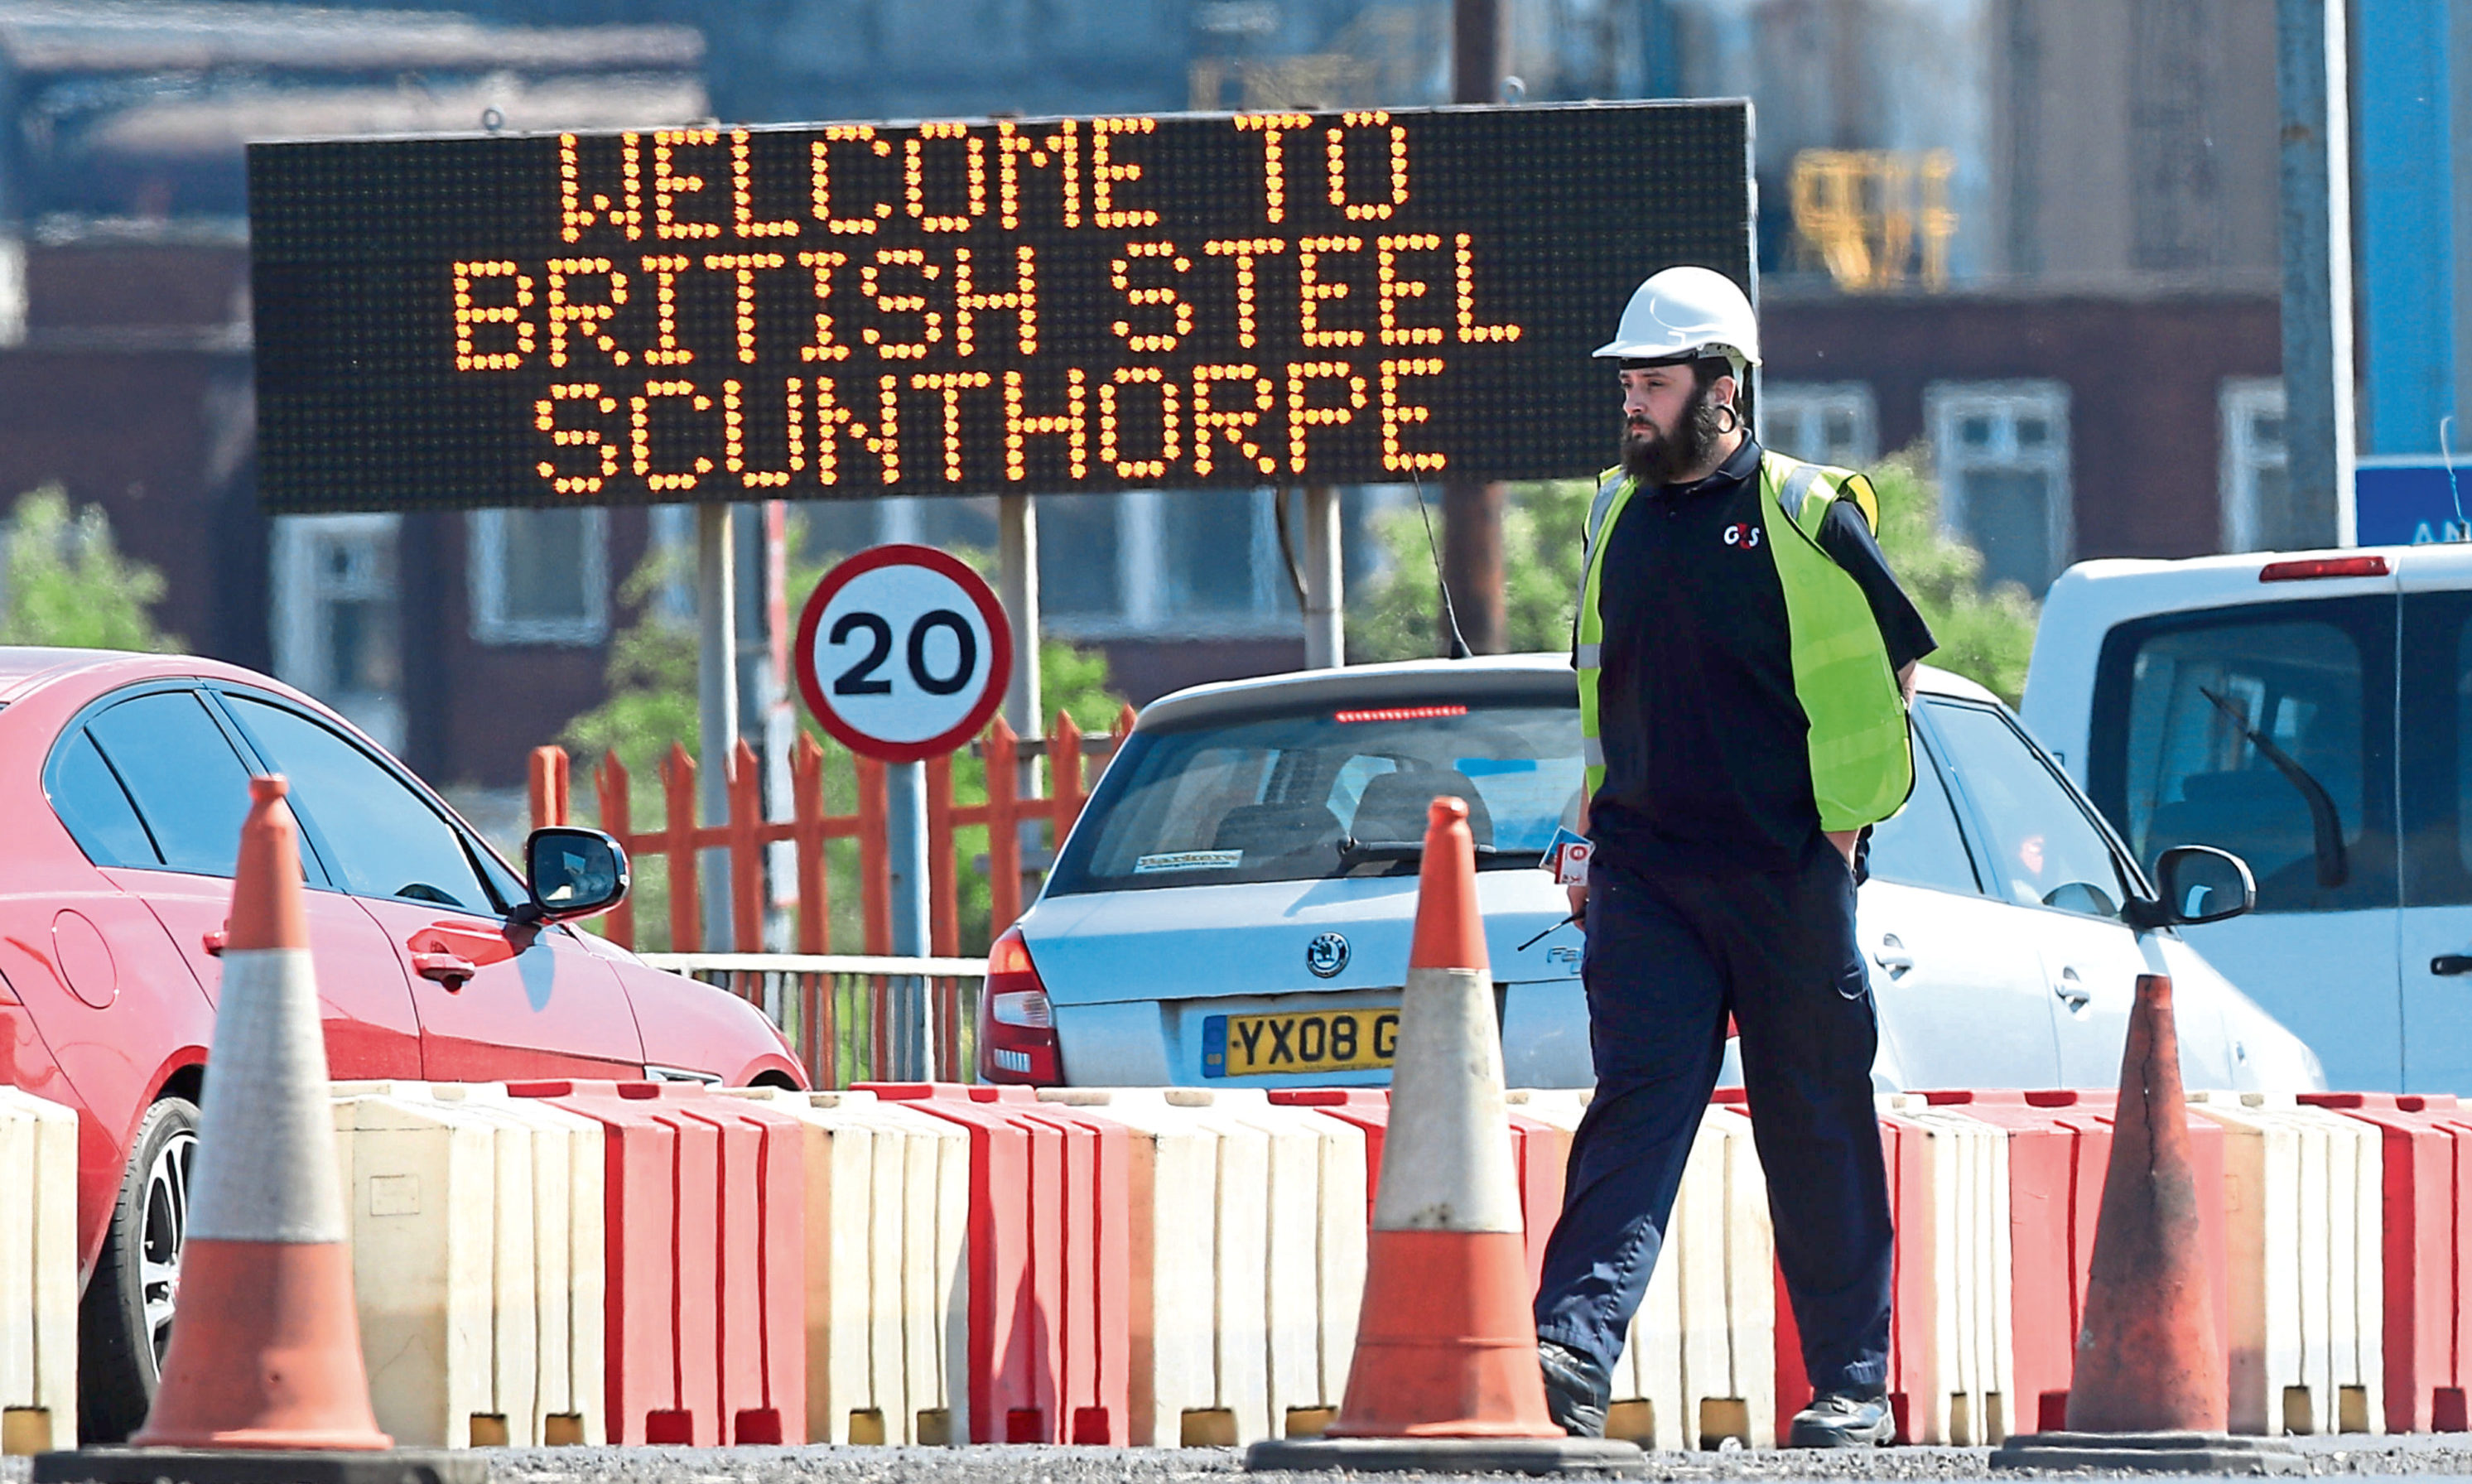 The entrance to the steelworks plant in Scunthorpe as British Steel is to go into official receivership after failing to secure funds for its future, sources said.